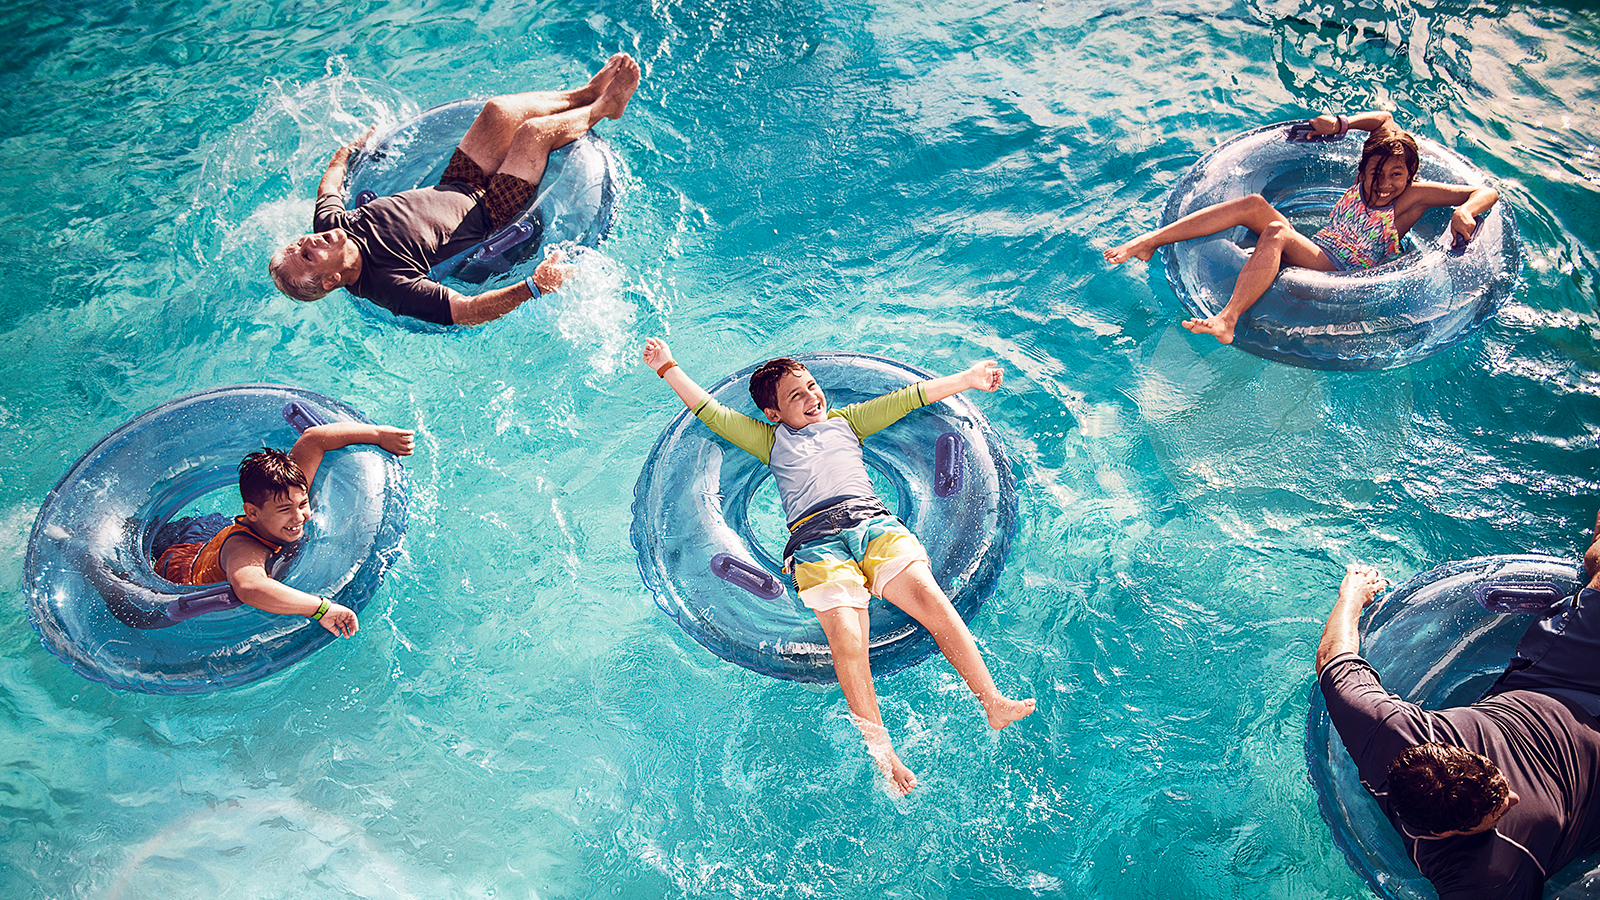 Guests of all ages splashing about in a pool while lounging on inner tubes at a Disney Resort hotel